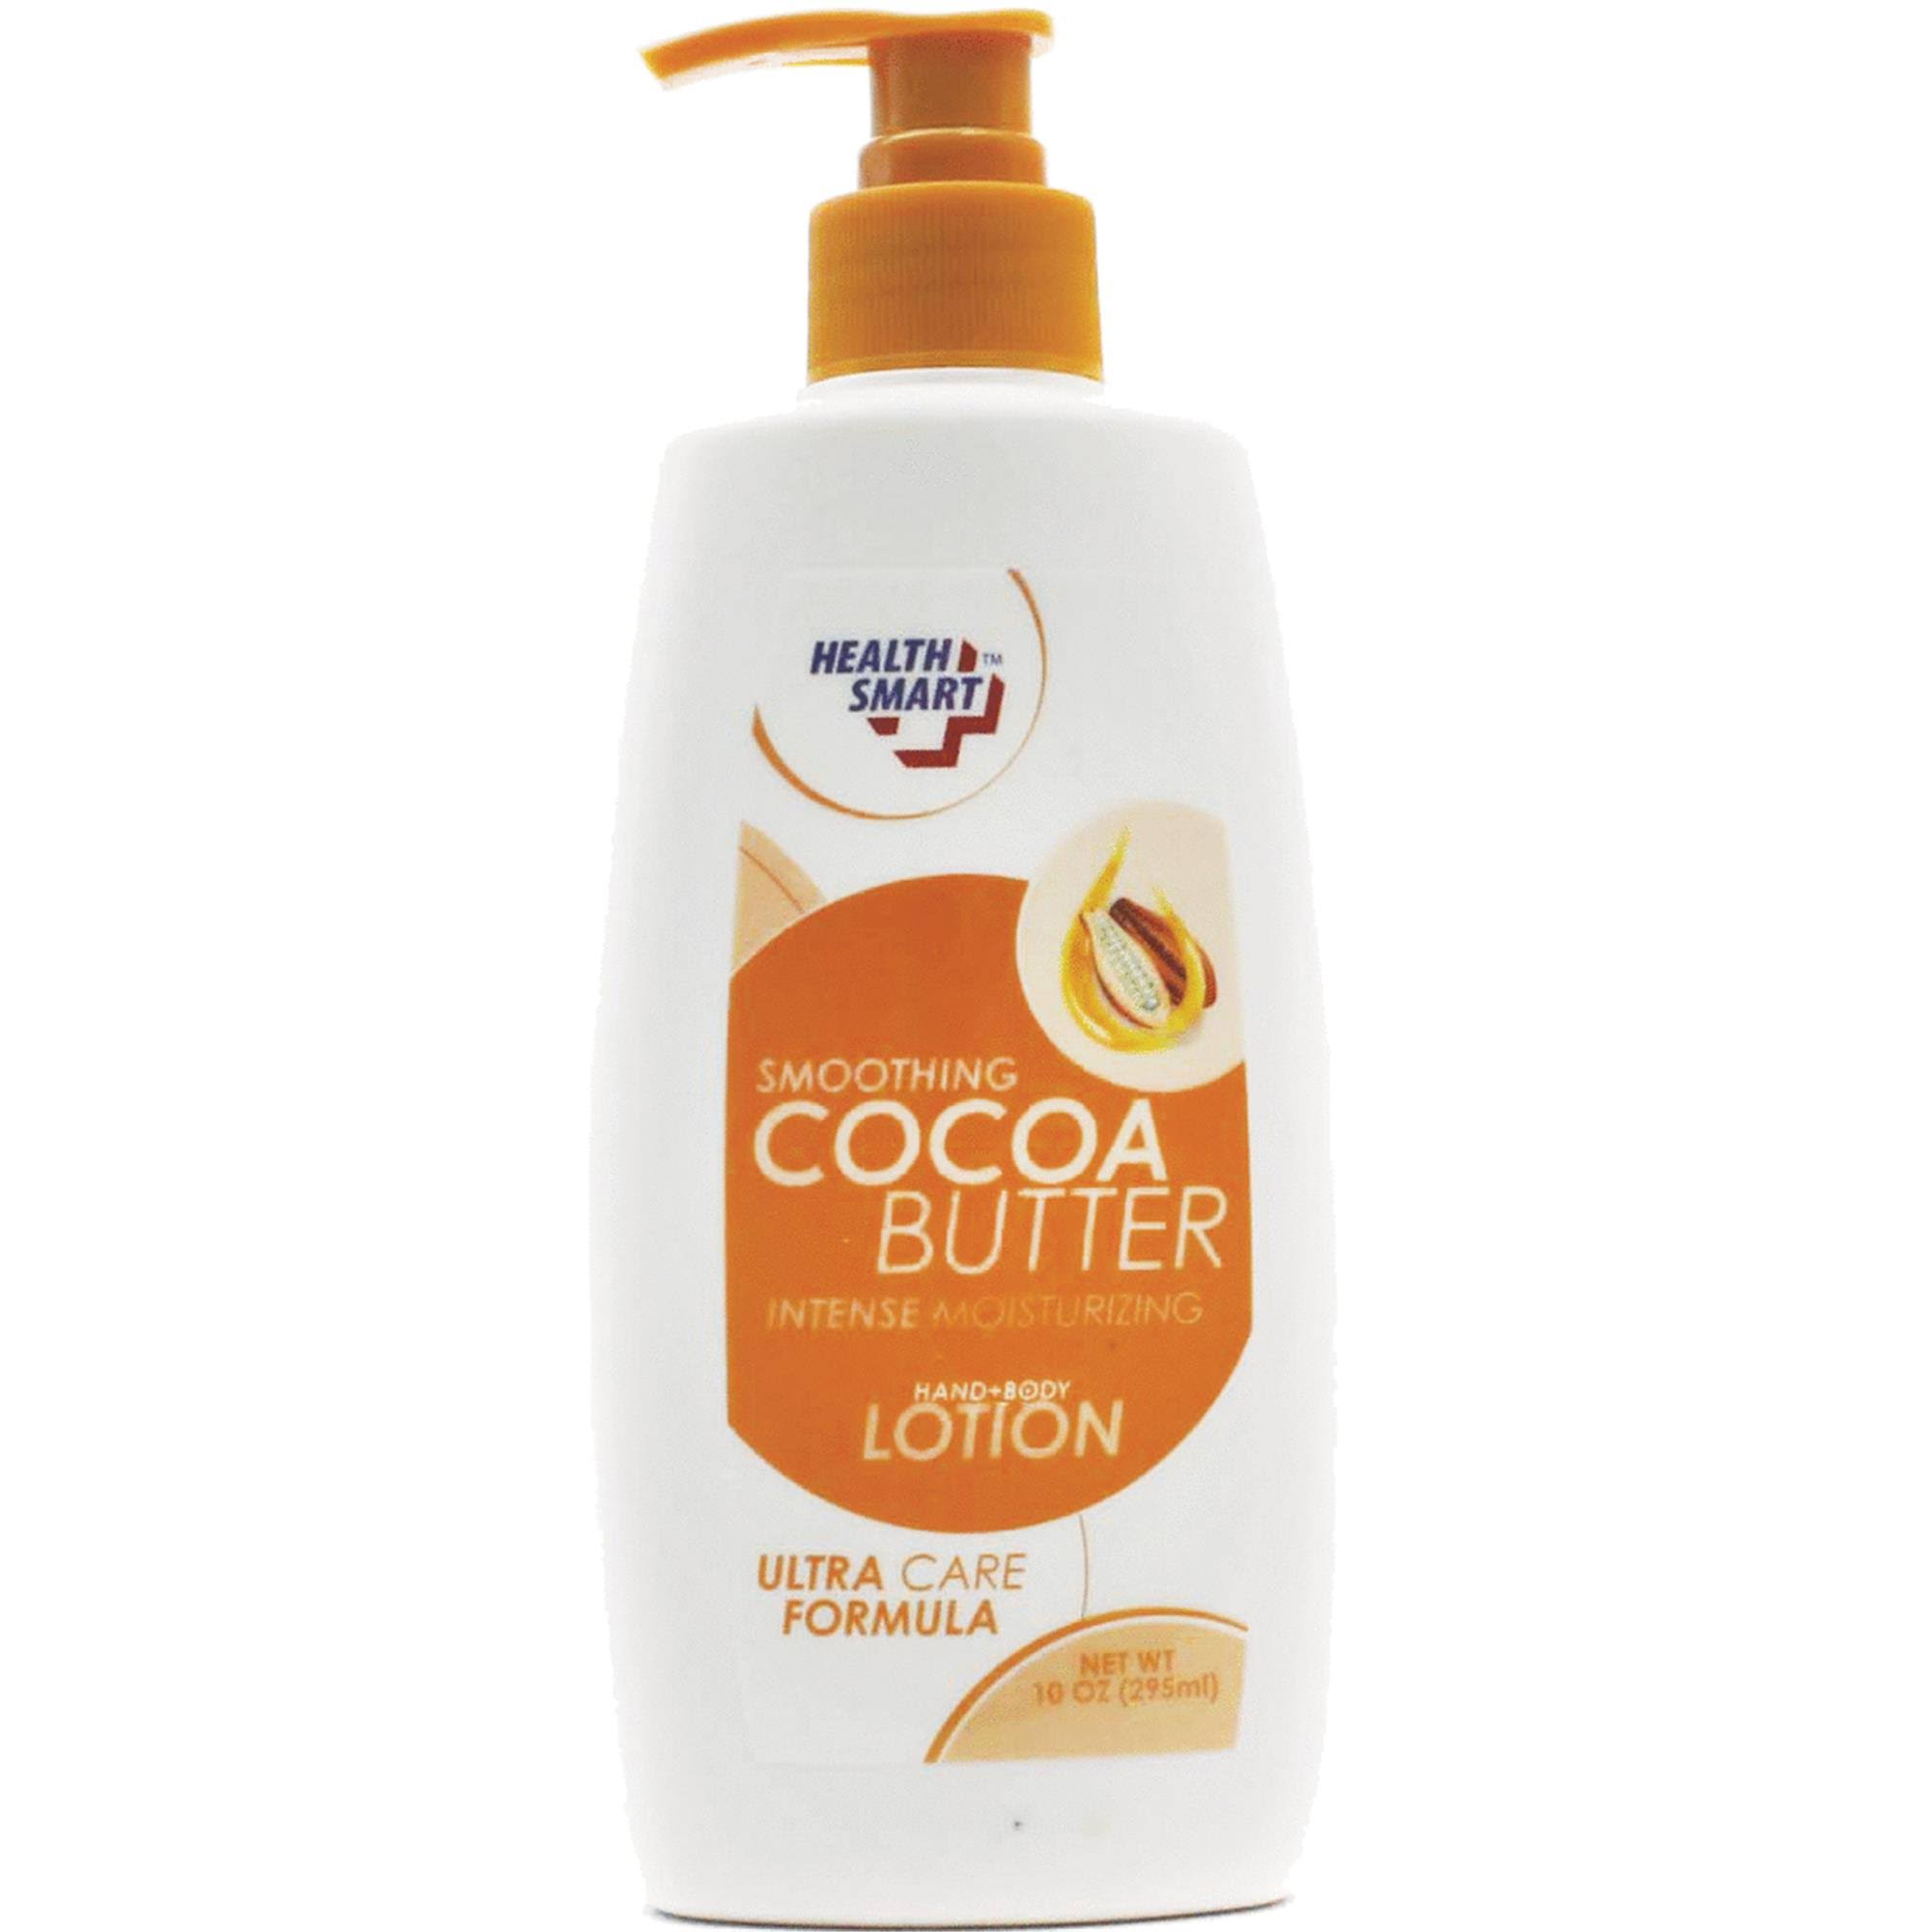 Health Smart Cocoa Butter Hand and Body Lotion - 10oz